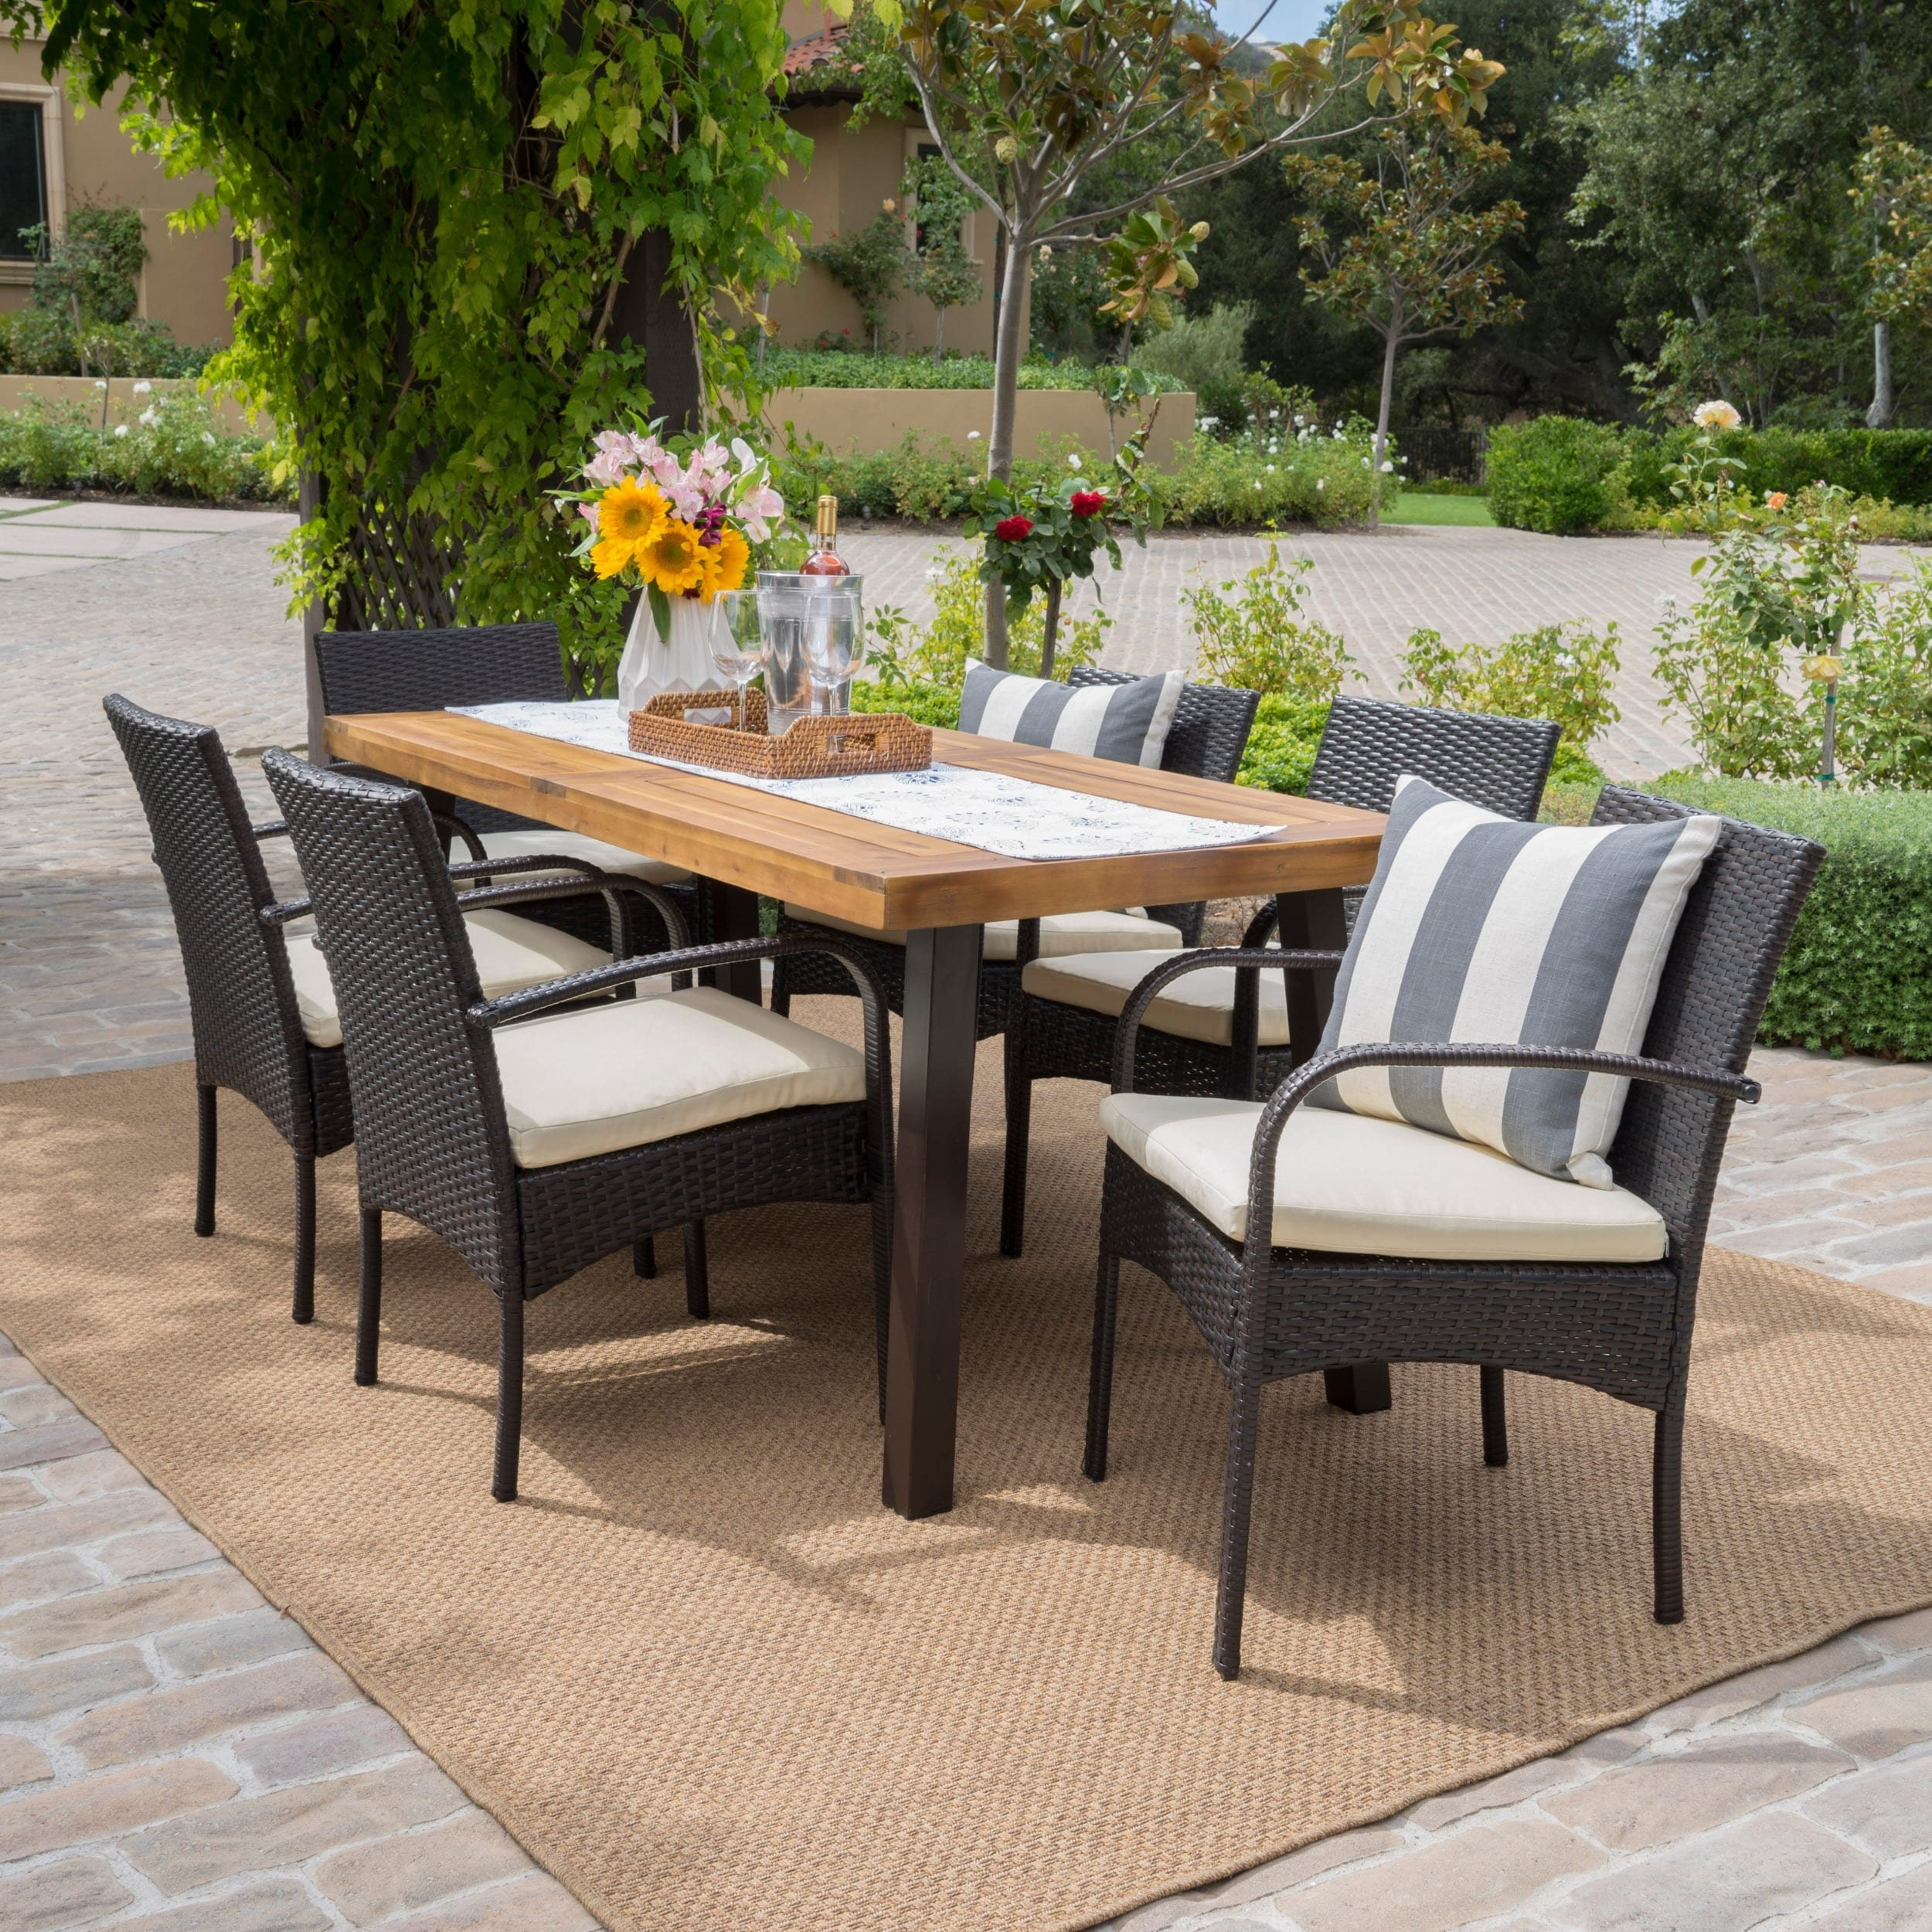 Bavaro Outdoor 7 Piece Rectangle Dining Set With Cushions By Christopher Knight Home On Free Shipping Today 12298587